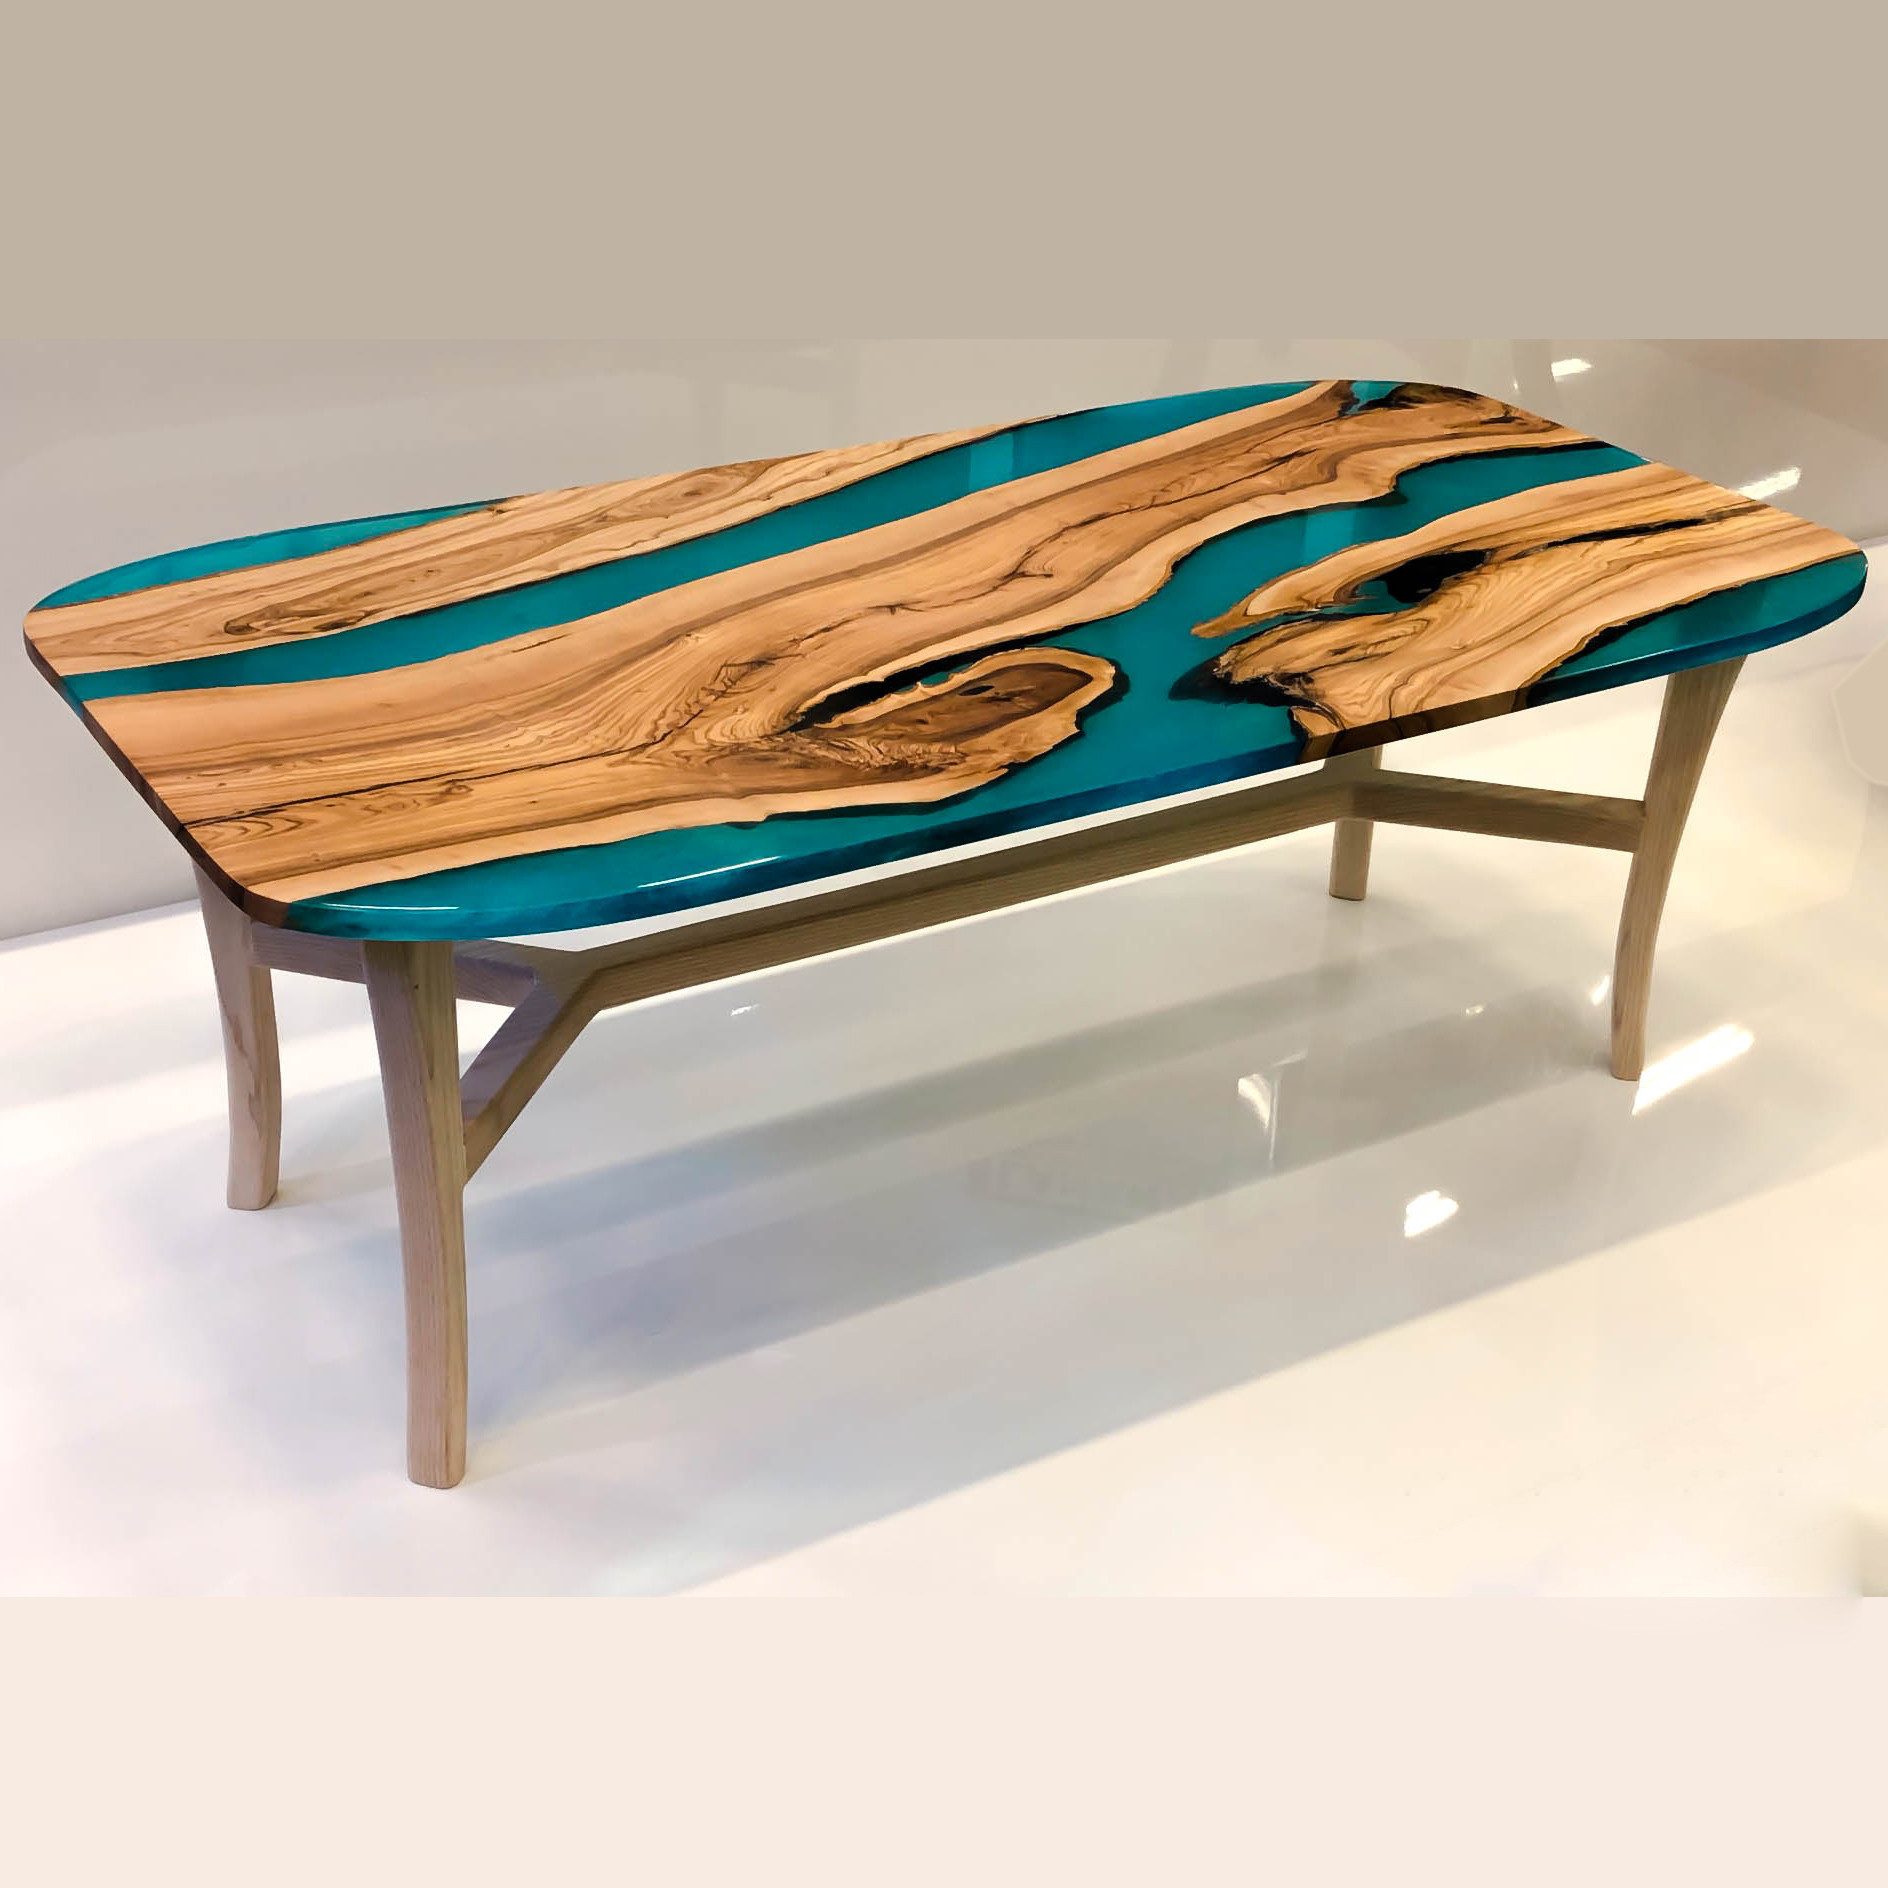 Best ideas about Resin Coffee Table . Save or Pin Aqua Resin Coffee Table Now.